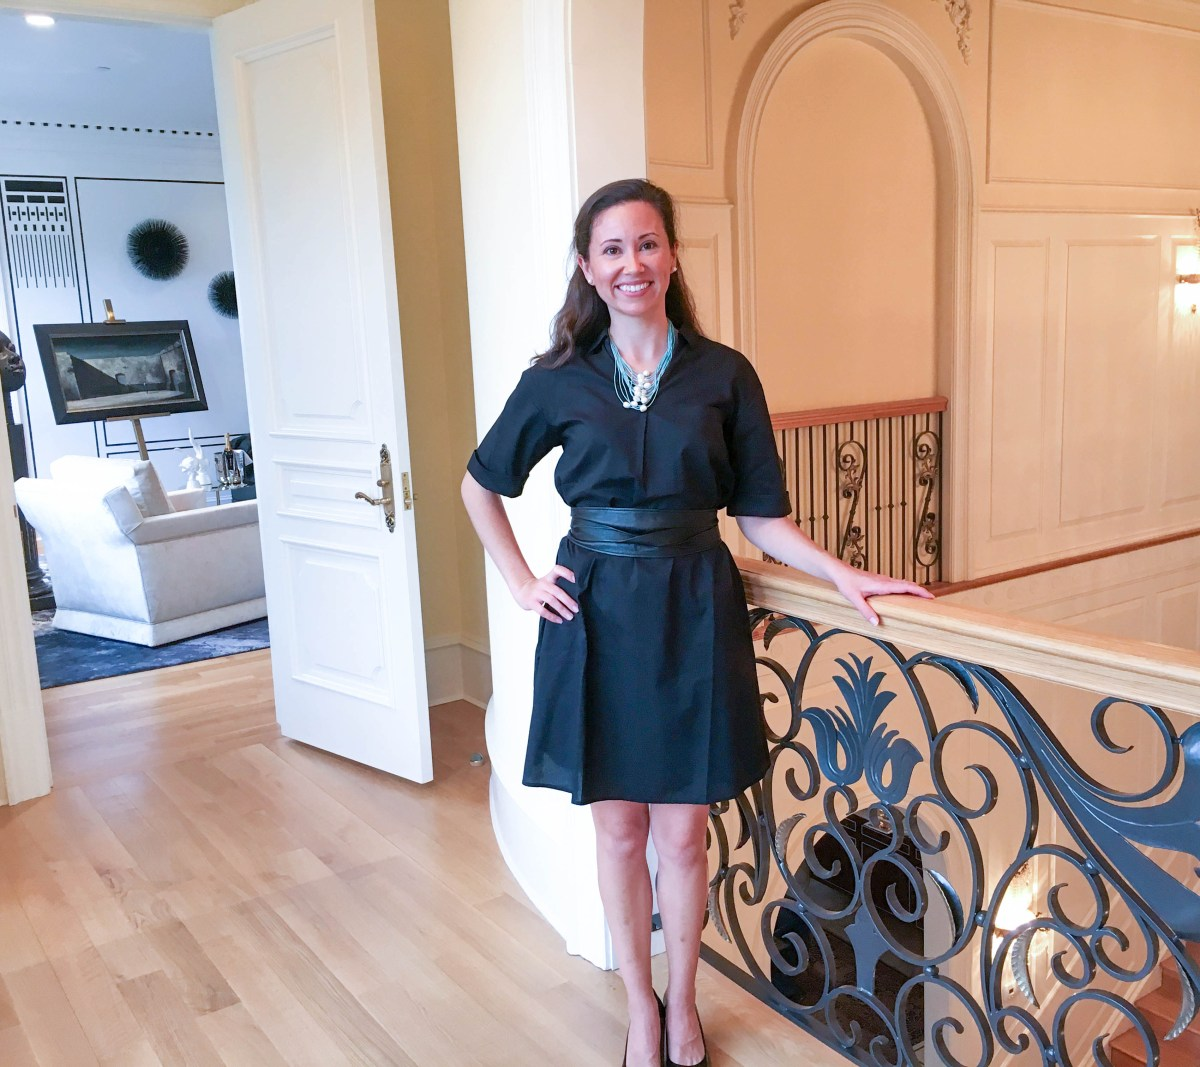 Art consultant Lauren Heller poses in a stylish black dress on the upper level interior balcony of a grand mansion.